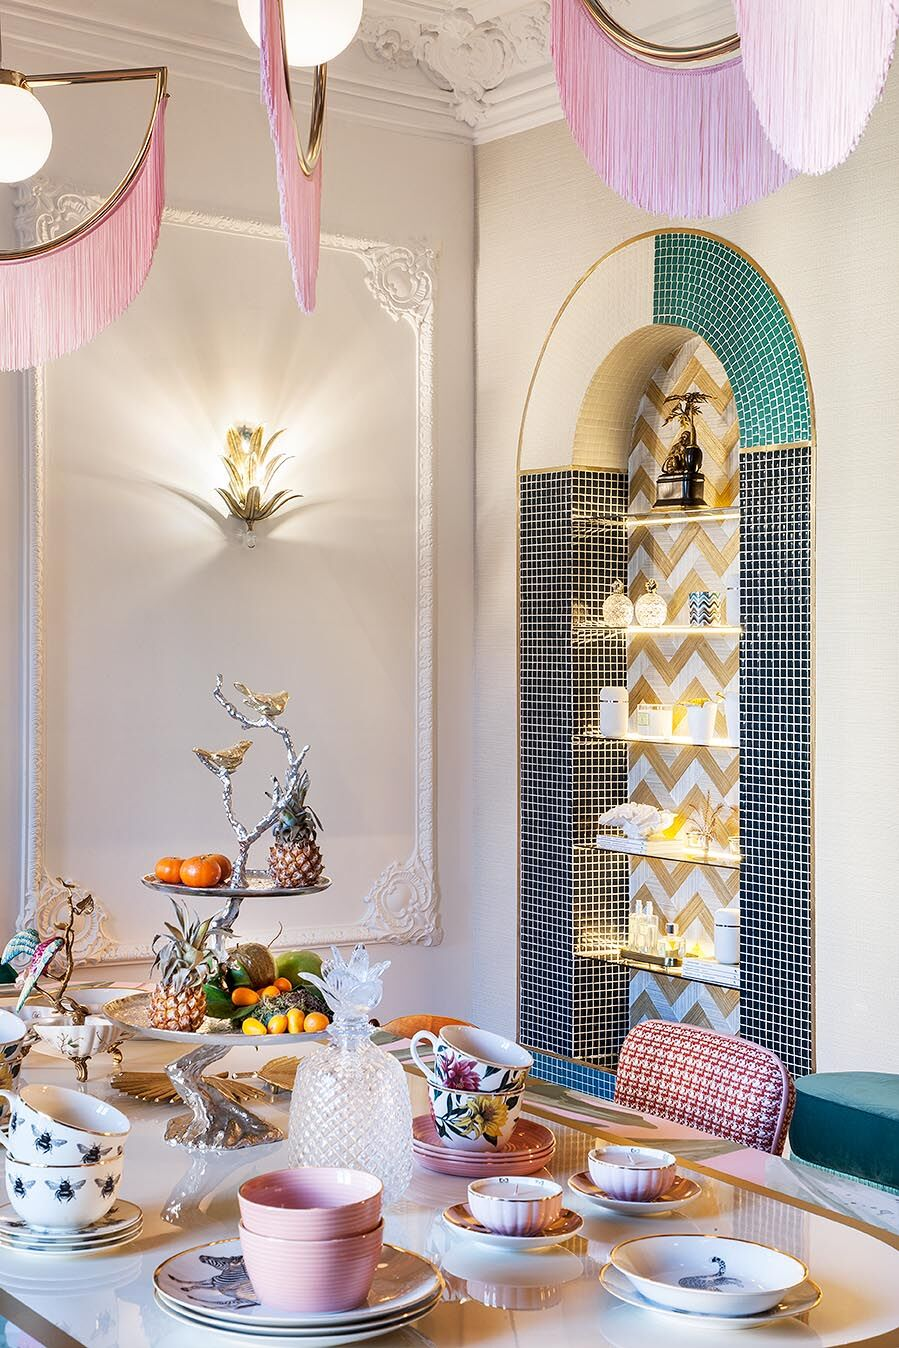 "Comedor ""Tropical Lunch"" de Virginia Gasch en Casa Decor 2018"